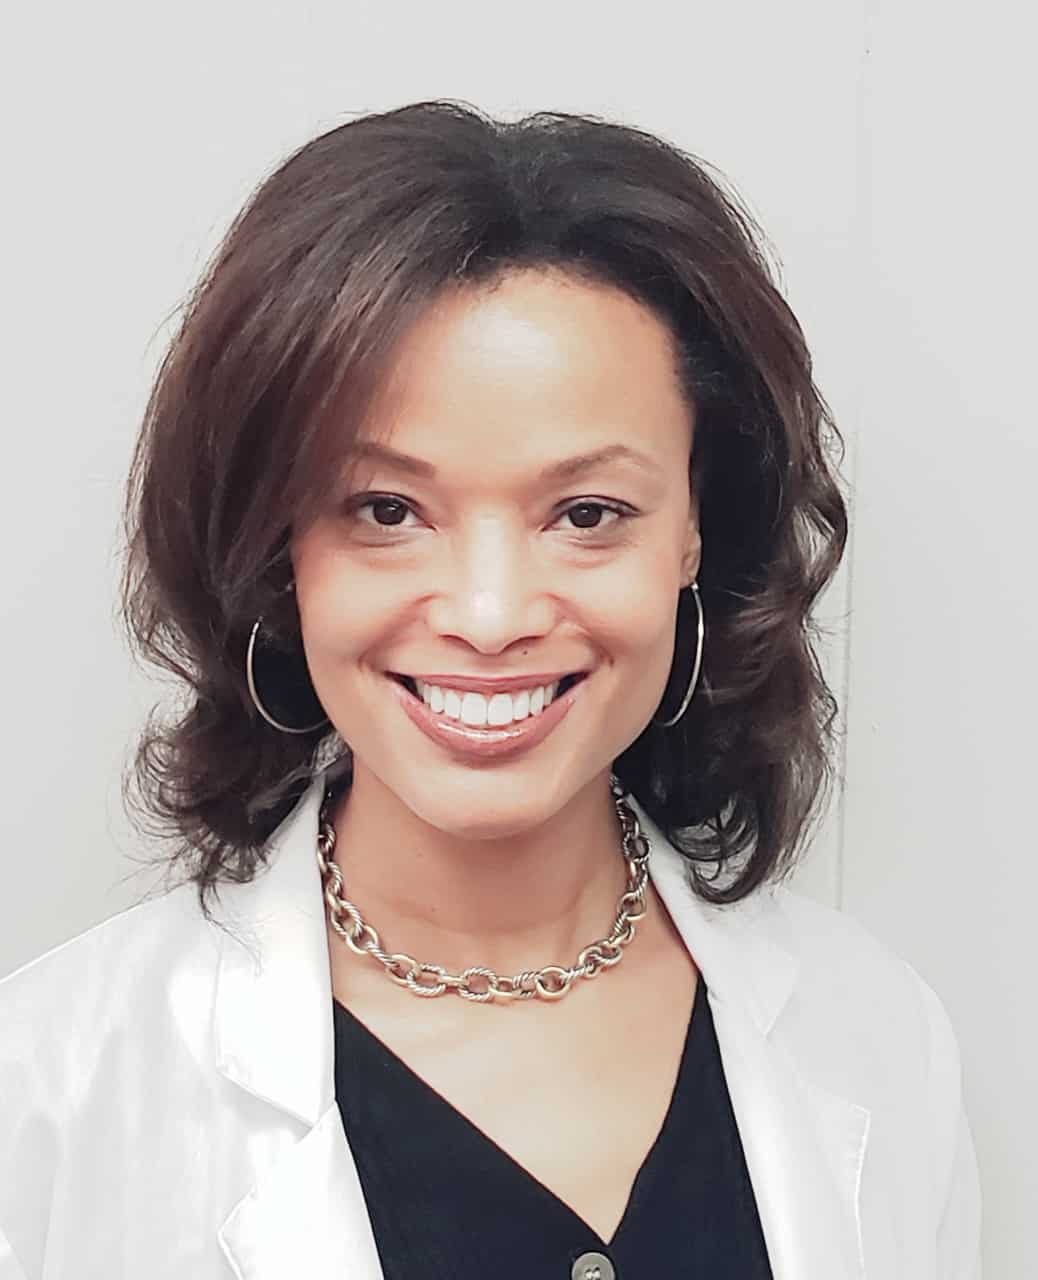 Dr. Cherice Hollingsworth, DMD in Lexington, KY